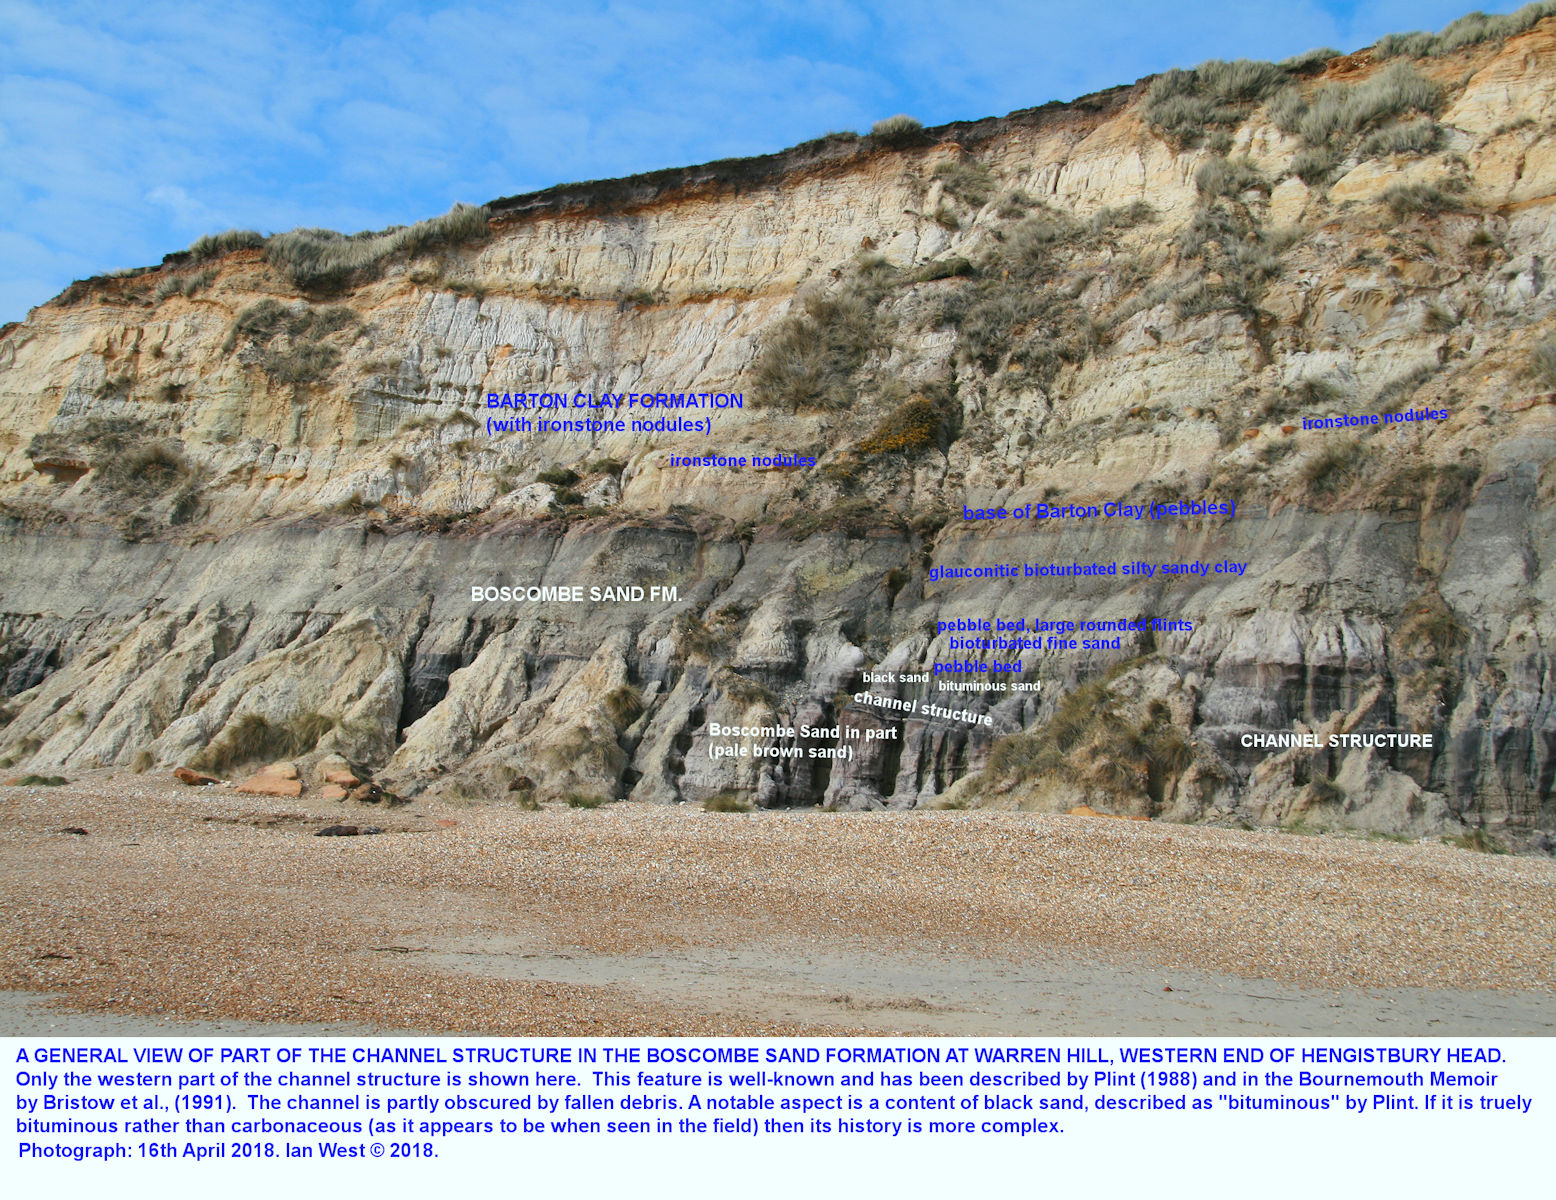 The Eocene, Boscombe Sand Formation at the base of the cliff at Hengistbury Head, Bournemouth, Dorset, showing a notable channel deposit, described by Plint and other authors